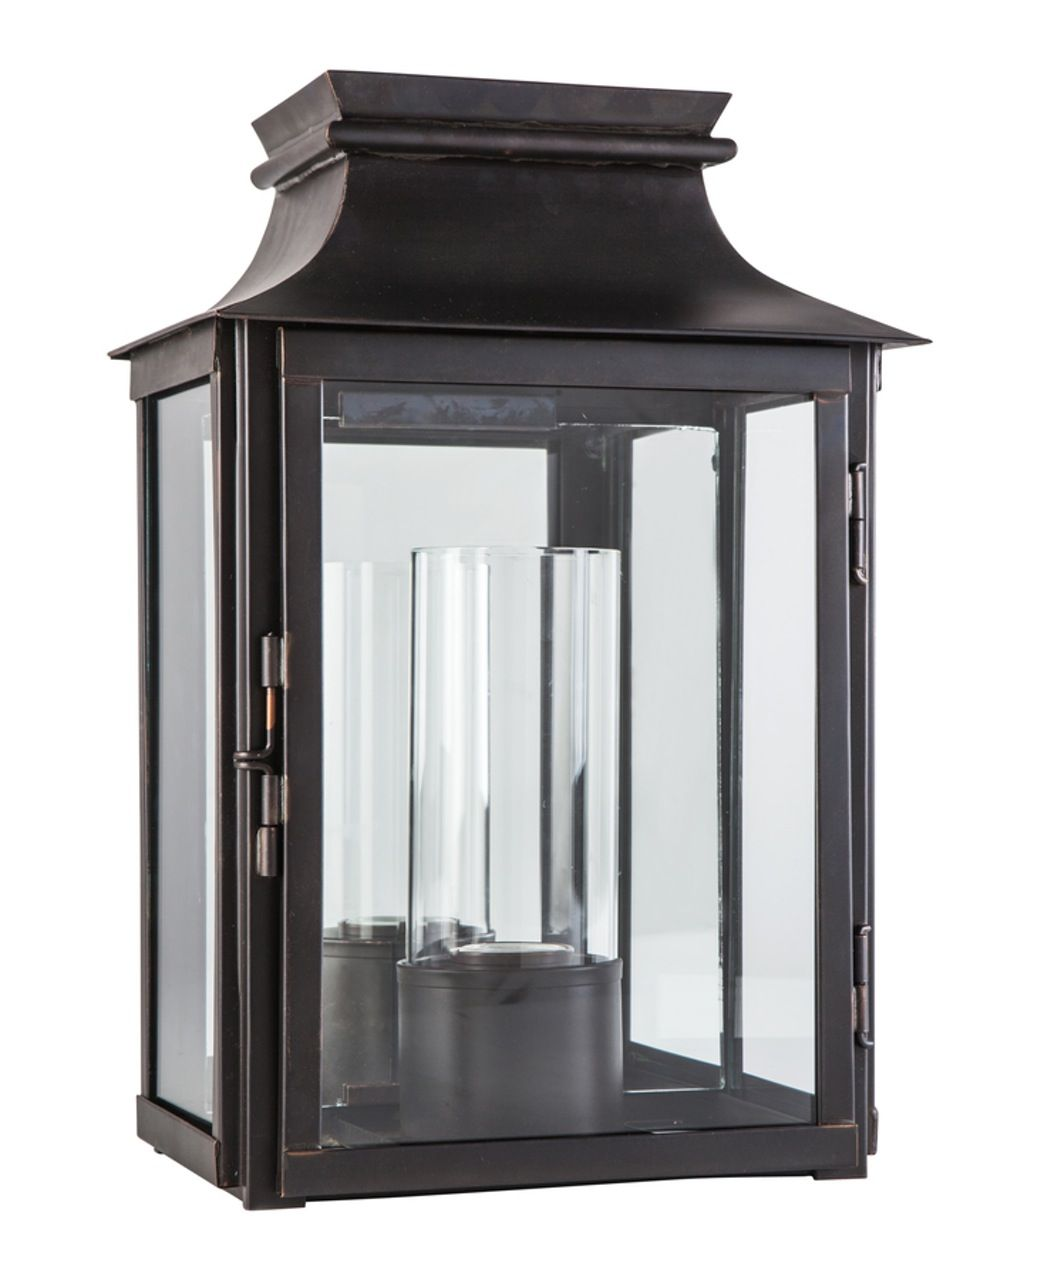 Remains lighting launches the scofield collection lighting